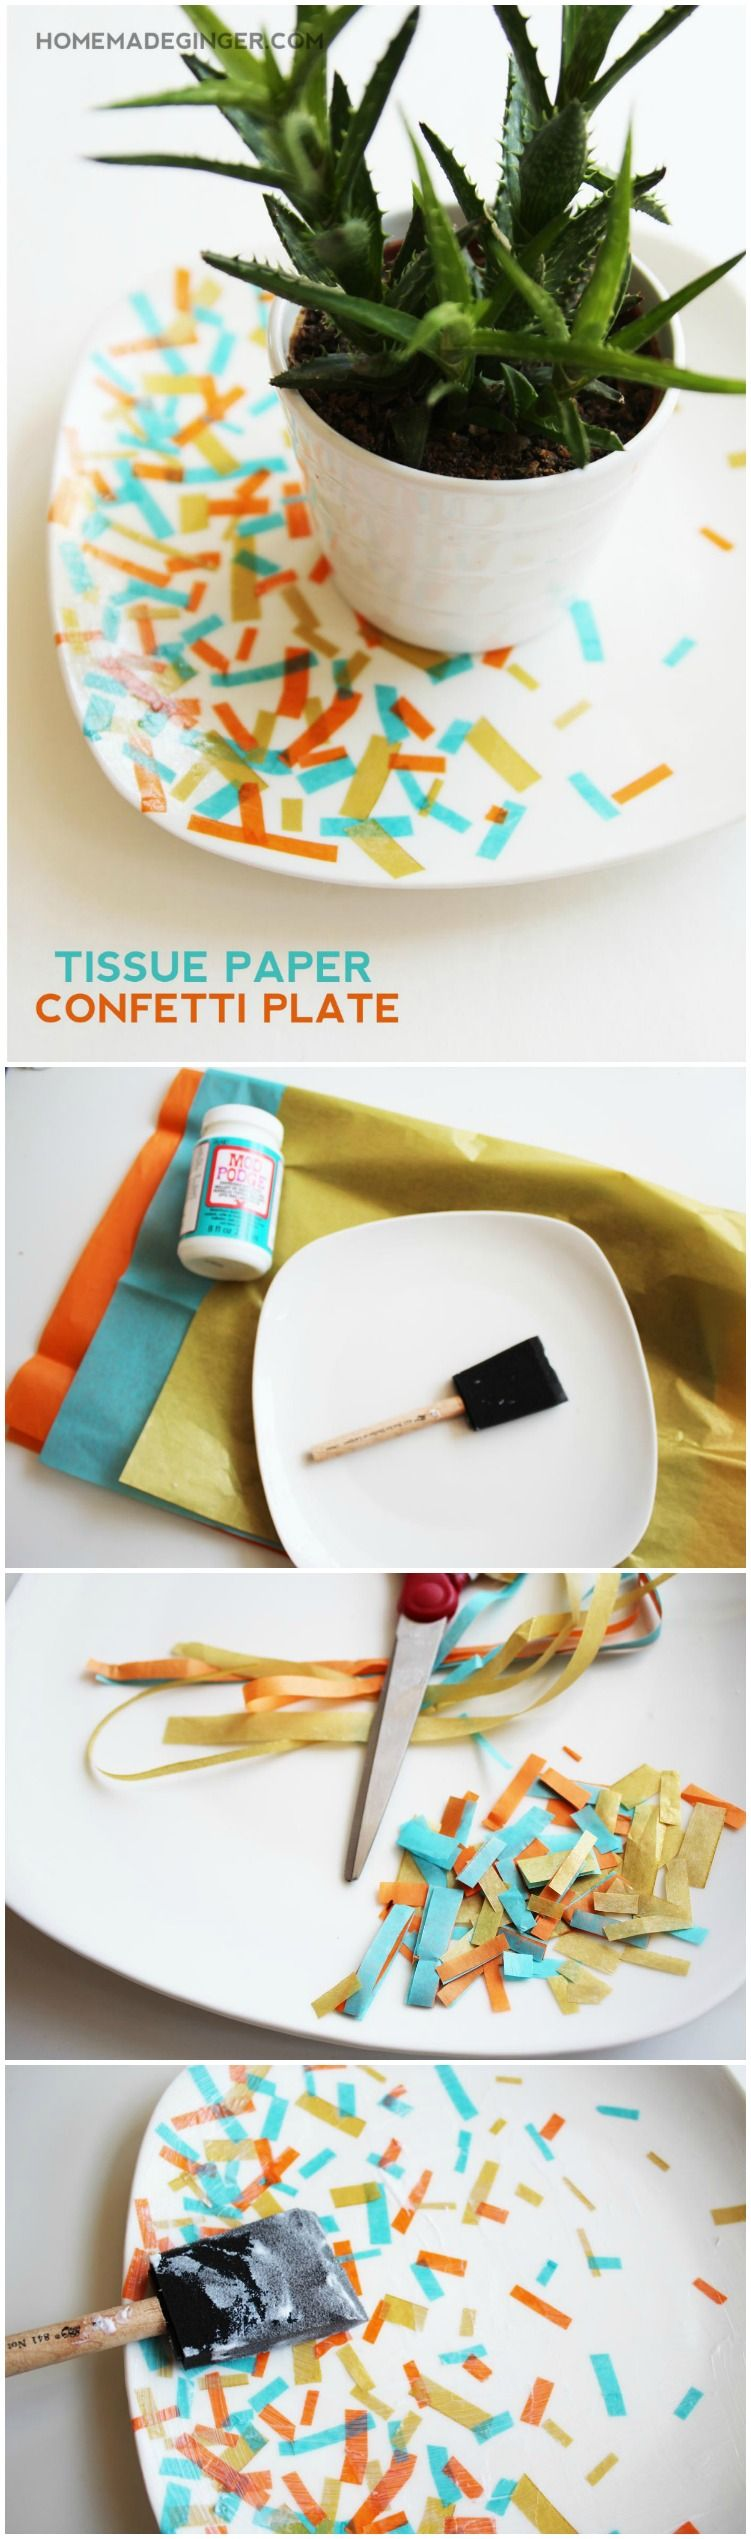 26+ Mod podge crafts to sell ideas